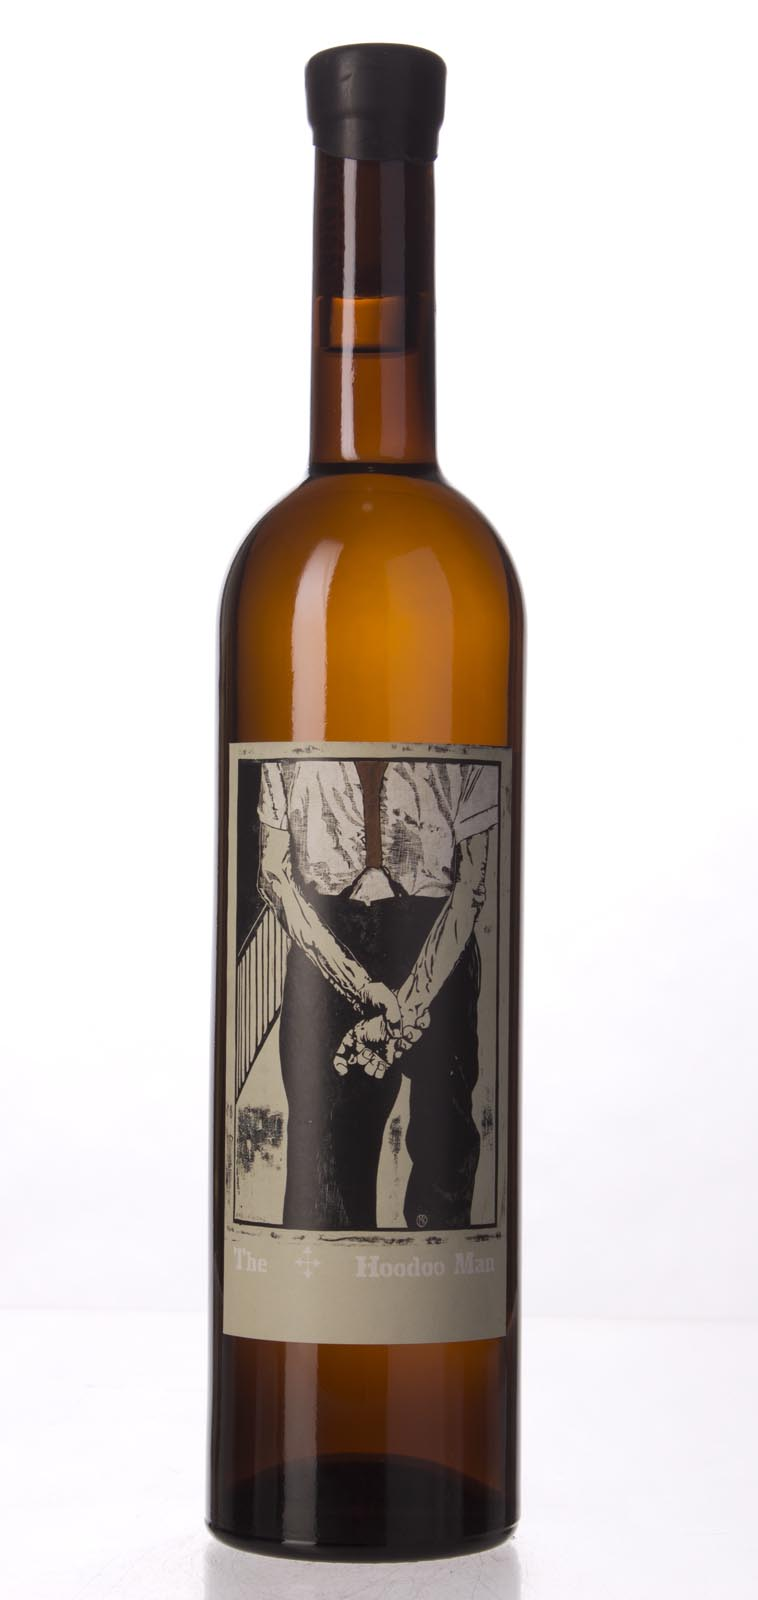 Sine Qua Non Proprietary White The Hoodoo Man 2006, 750mL (WA95, ST93) from The BPW - Merchants of rare and fine wines.